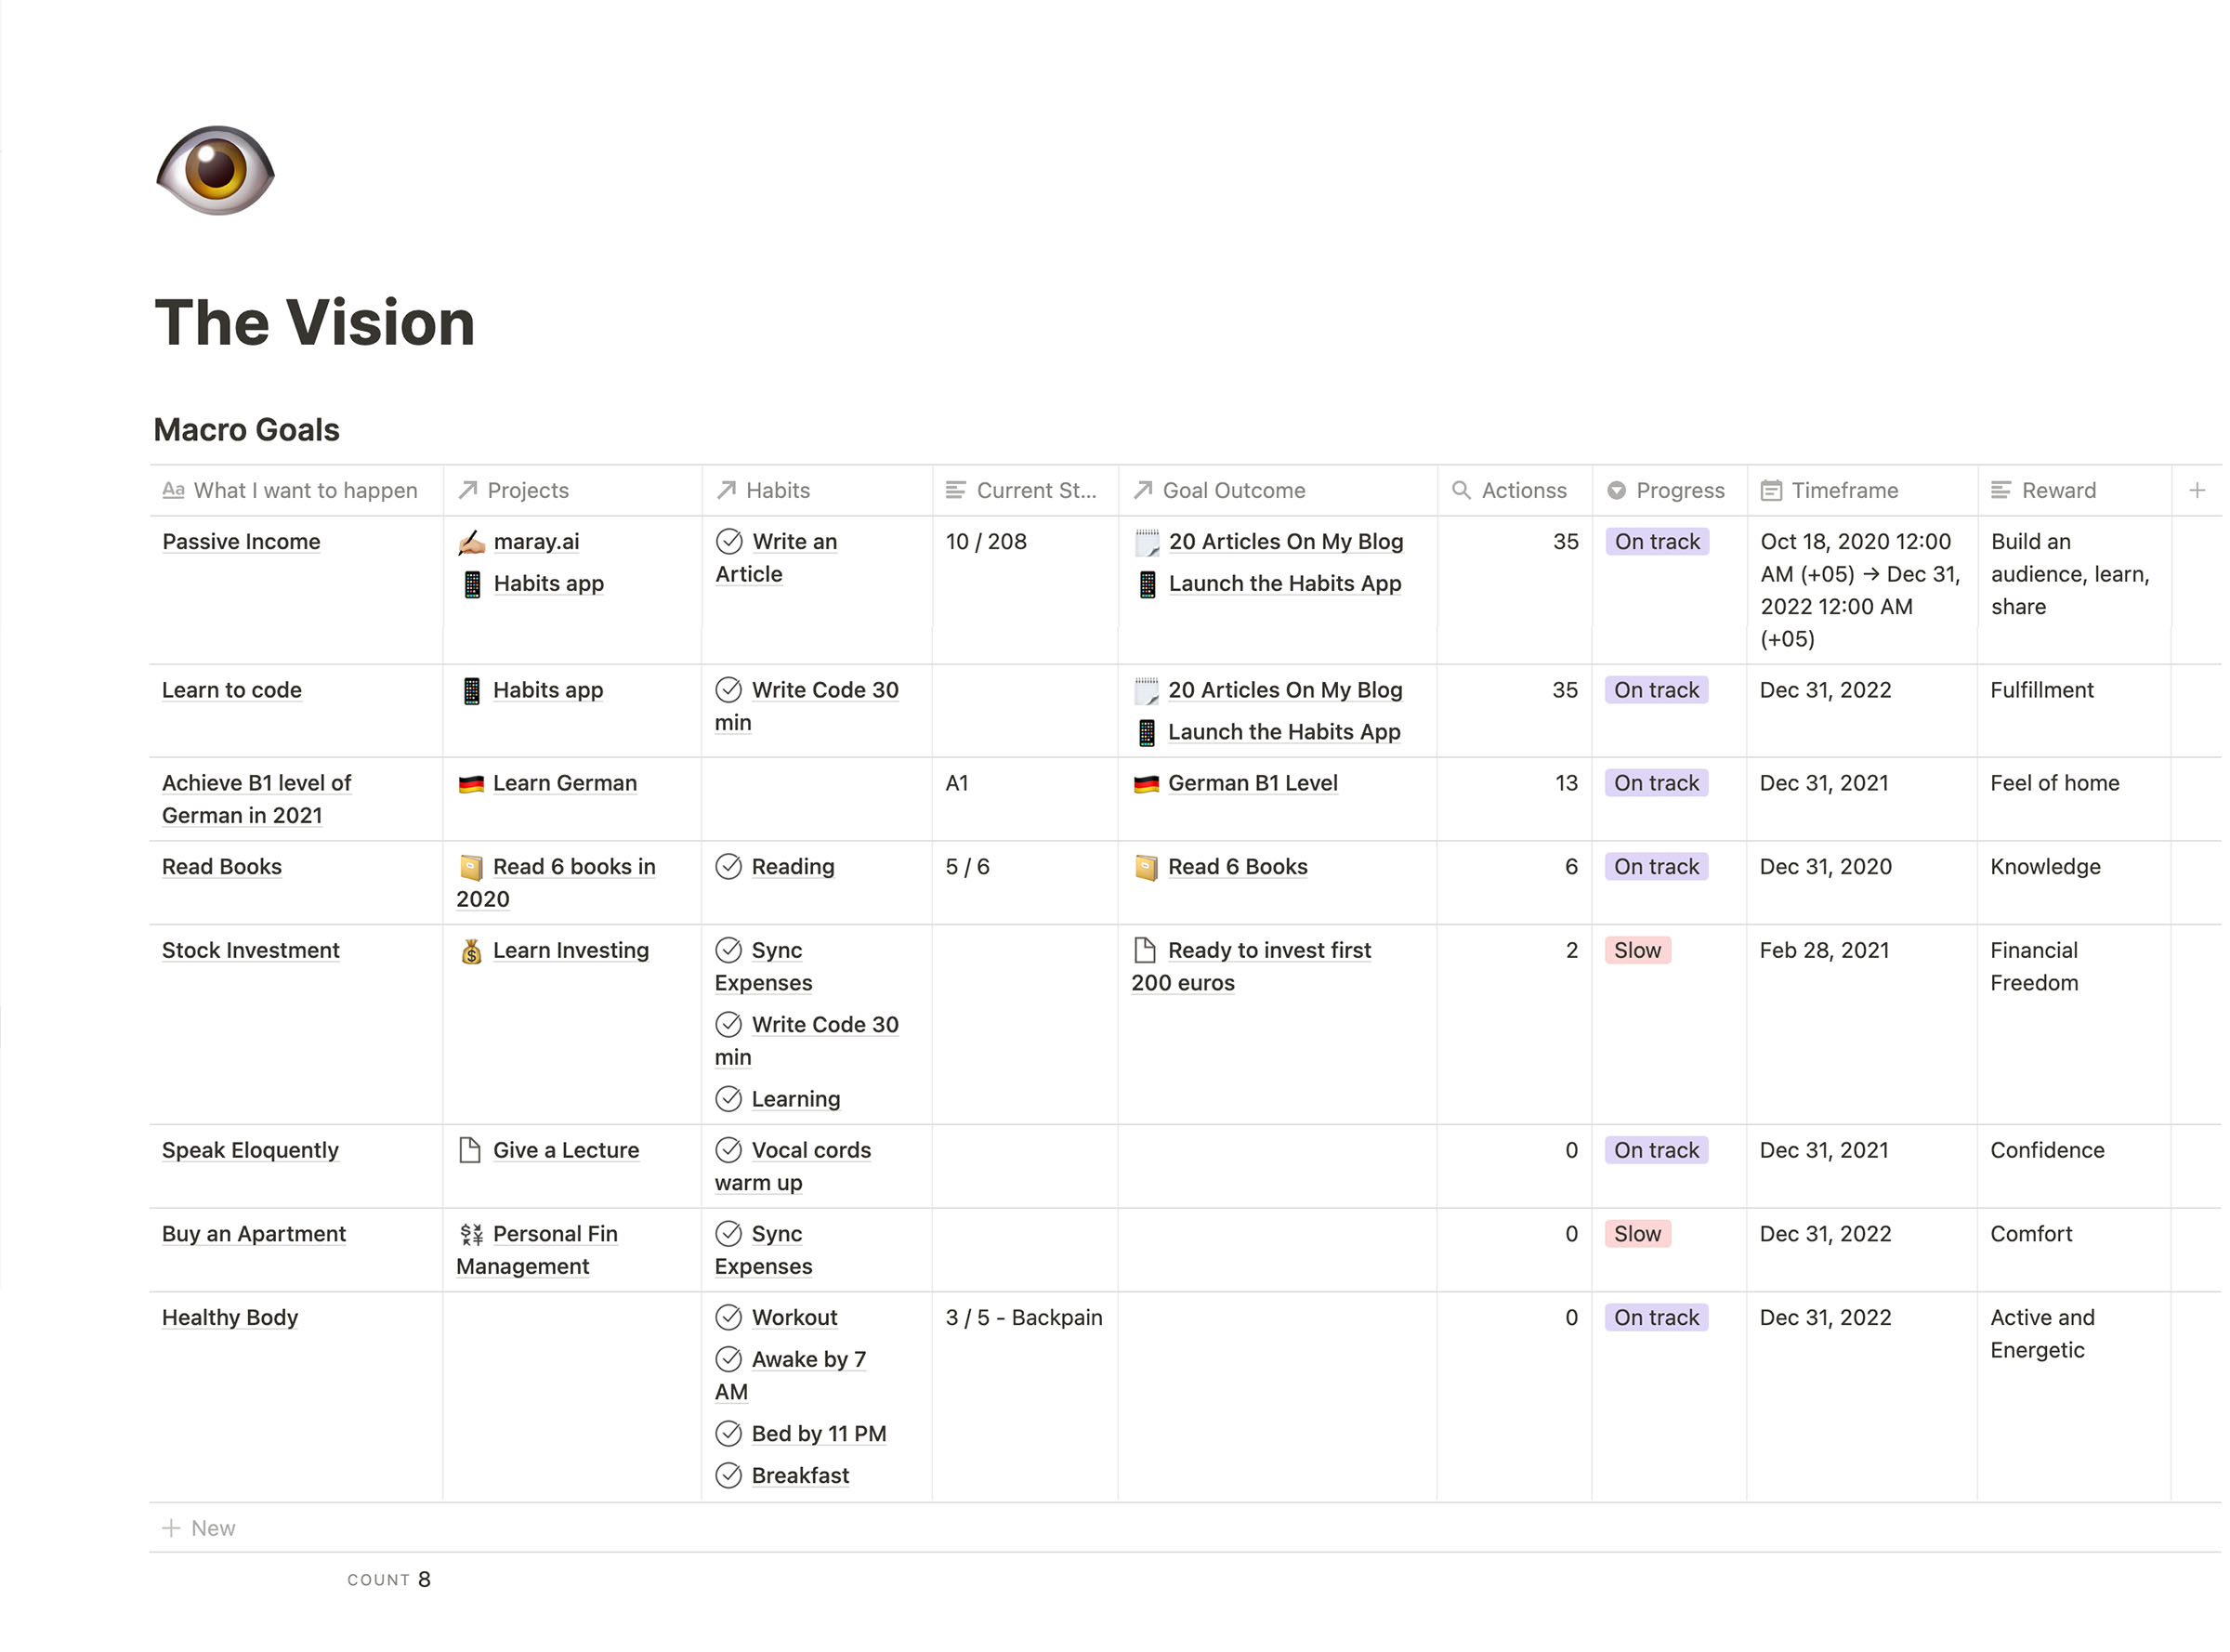 The Vision goal-setting system in Notion